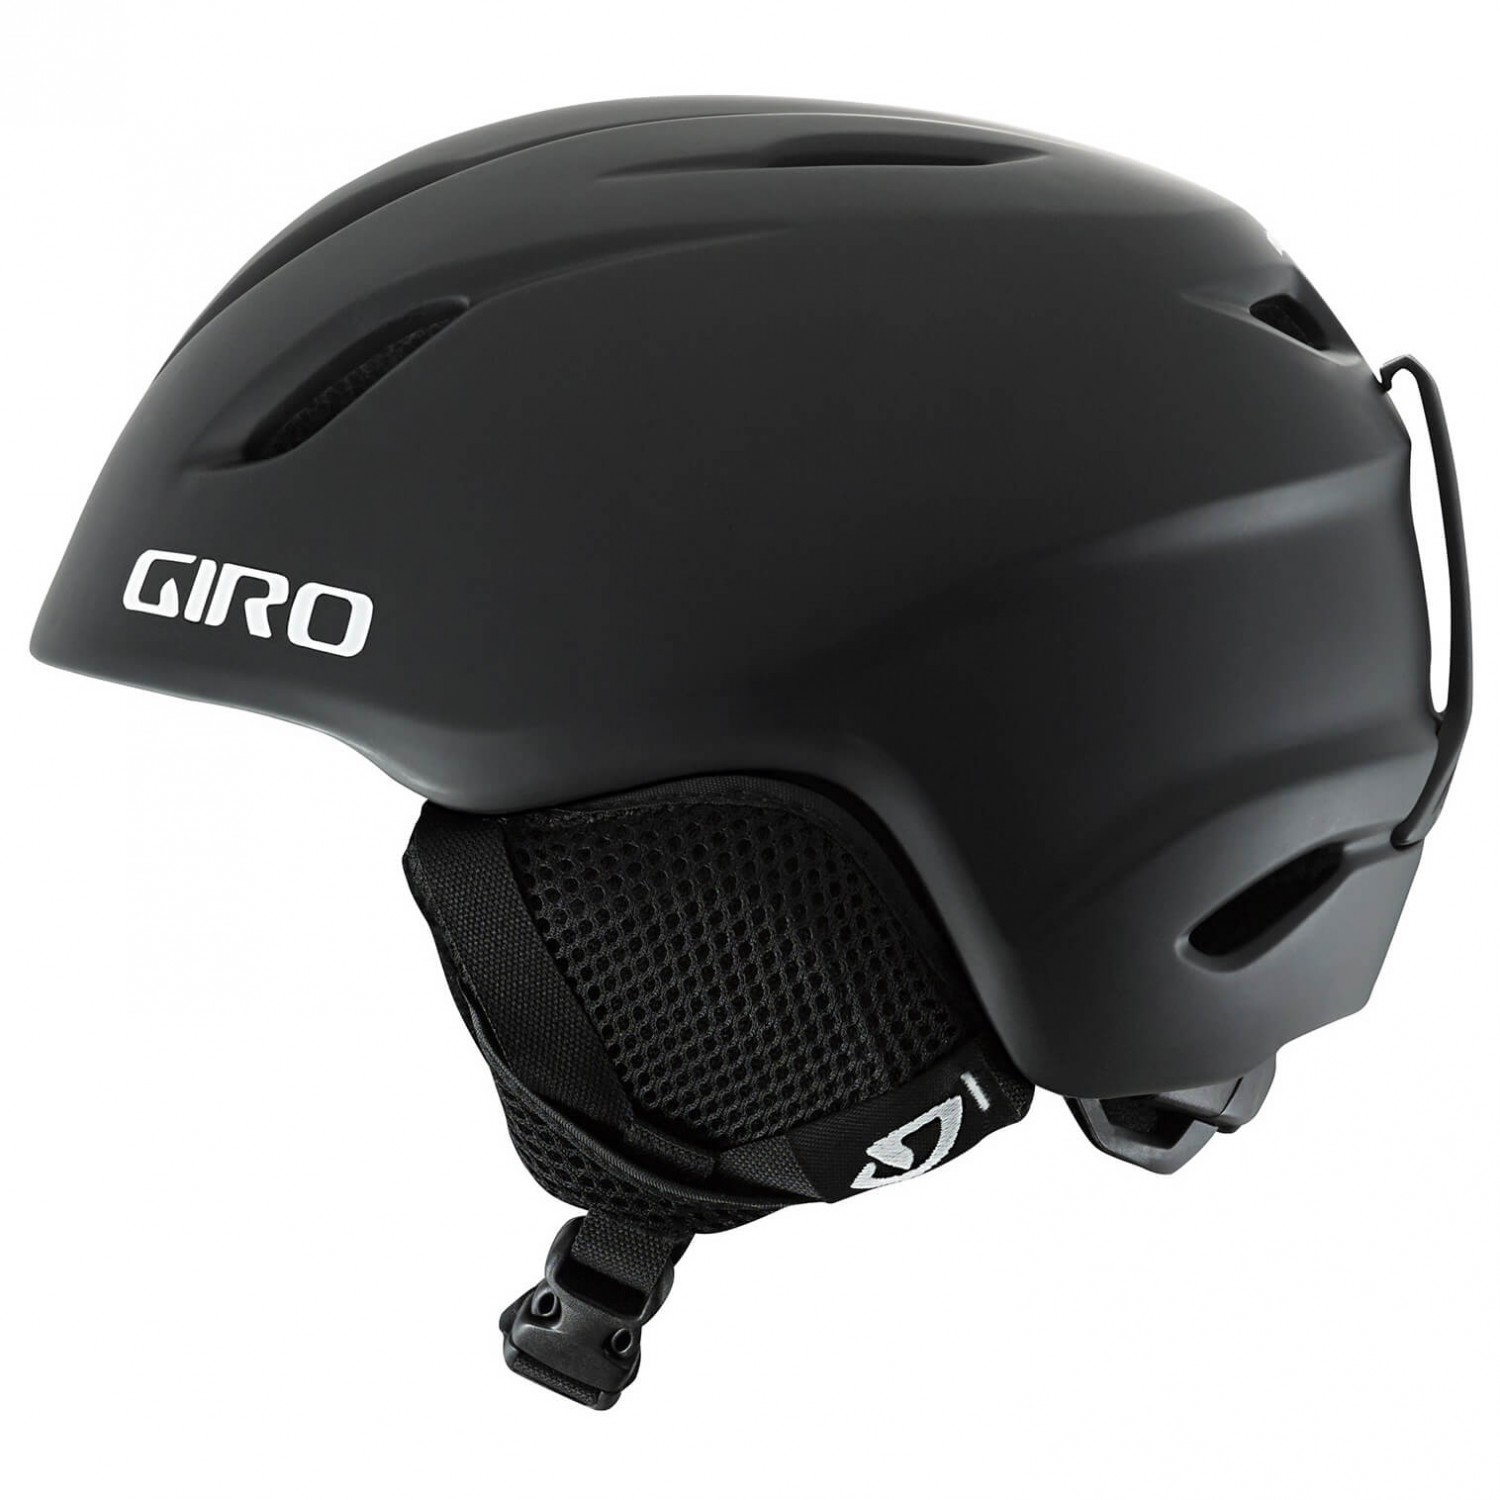 giro launch skihelm kinder versandkostenfrei. Black Bedroom Furniture Sets. Home Design Ideas